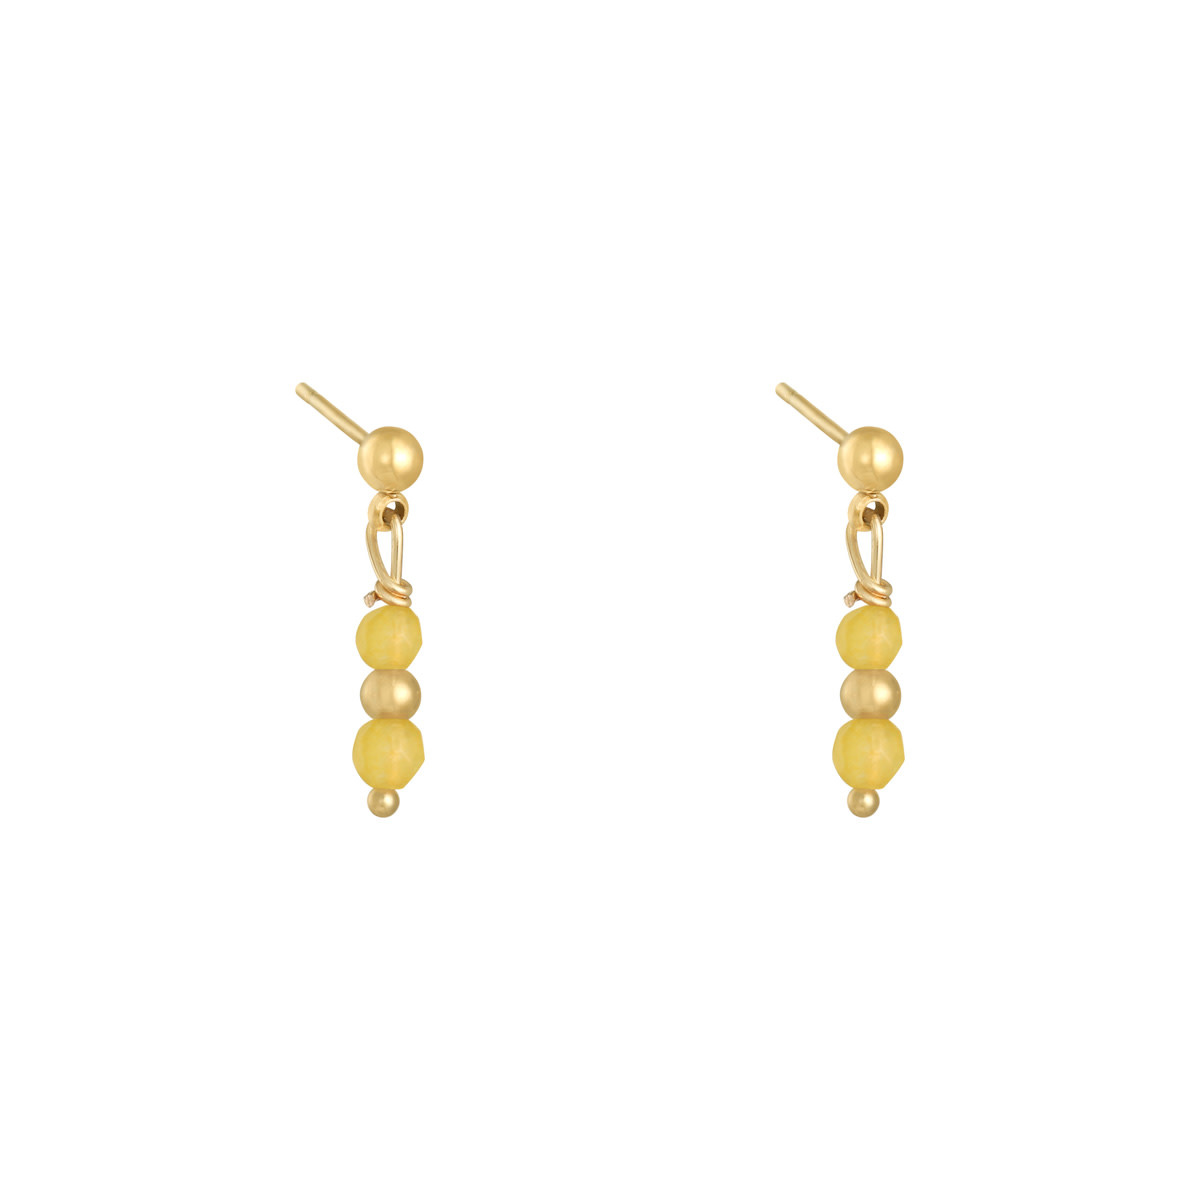 With love Earrings in a row - gold yellow